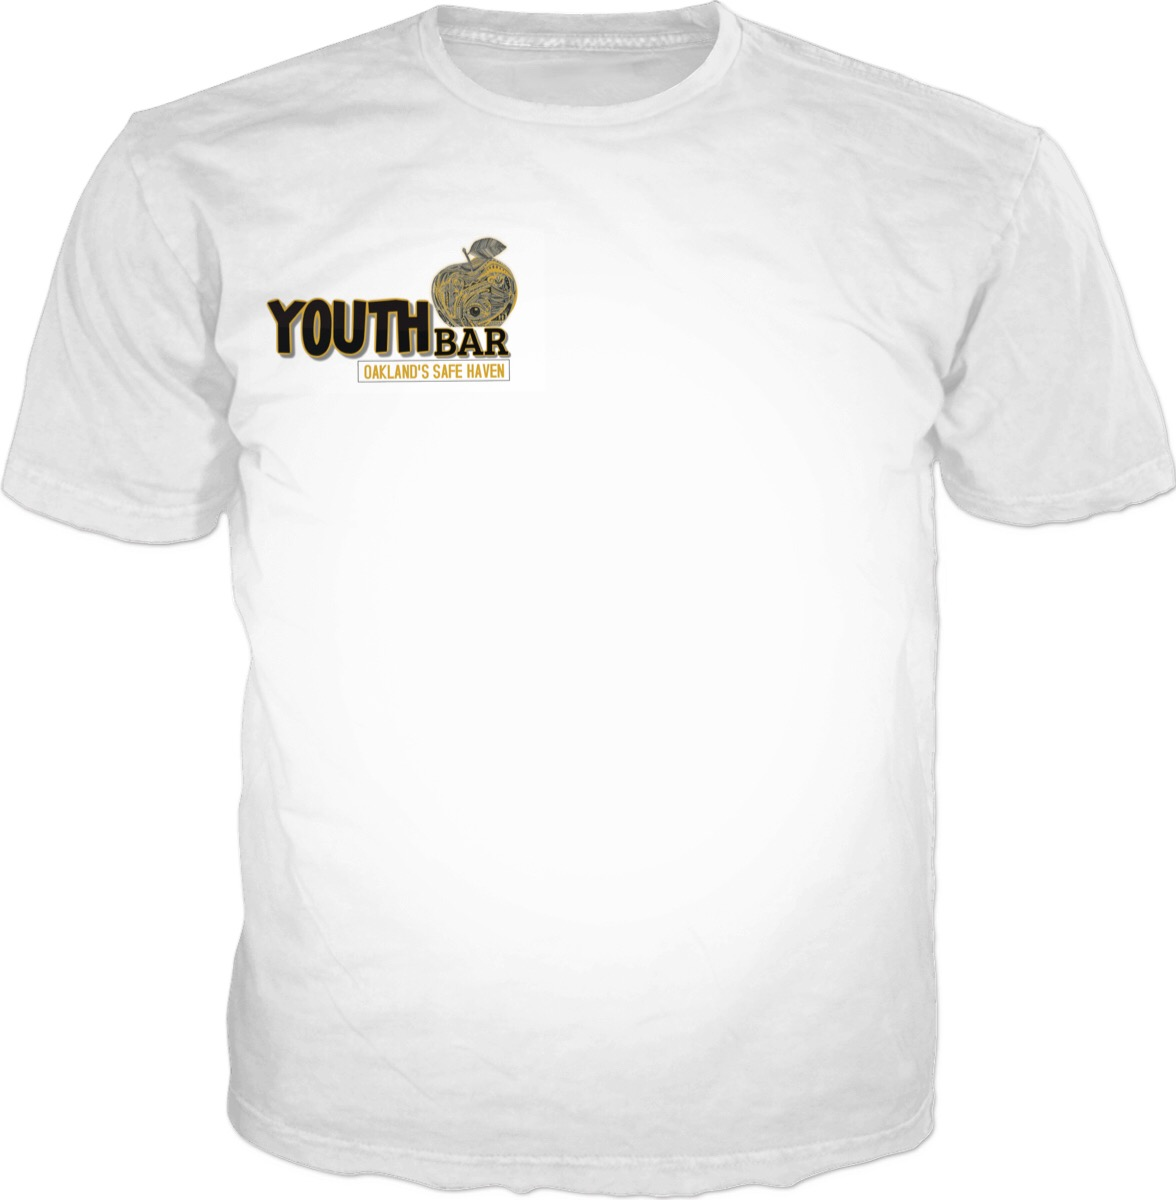 Youth Bar Tee